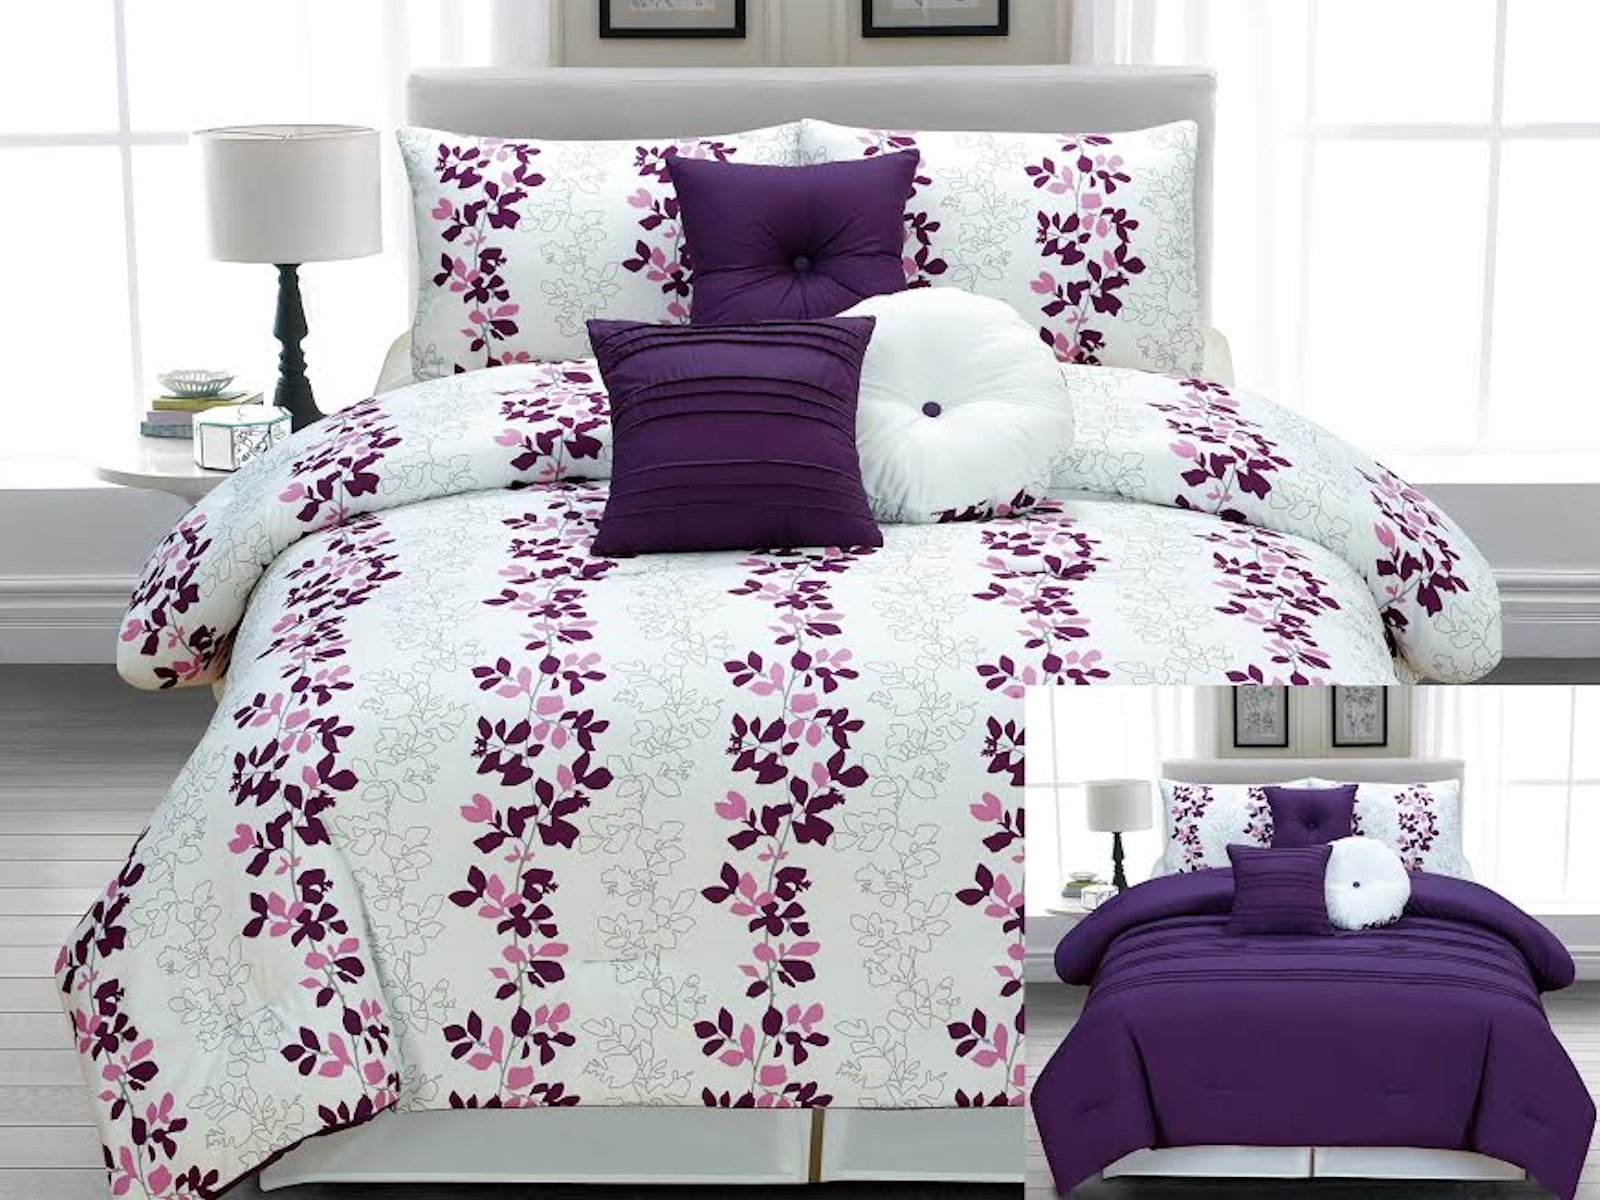 Dazzling queen size comforter sets for bedroom design with cheap queen size comforter sets